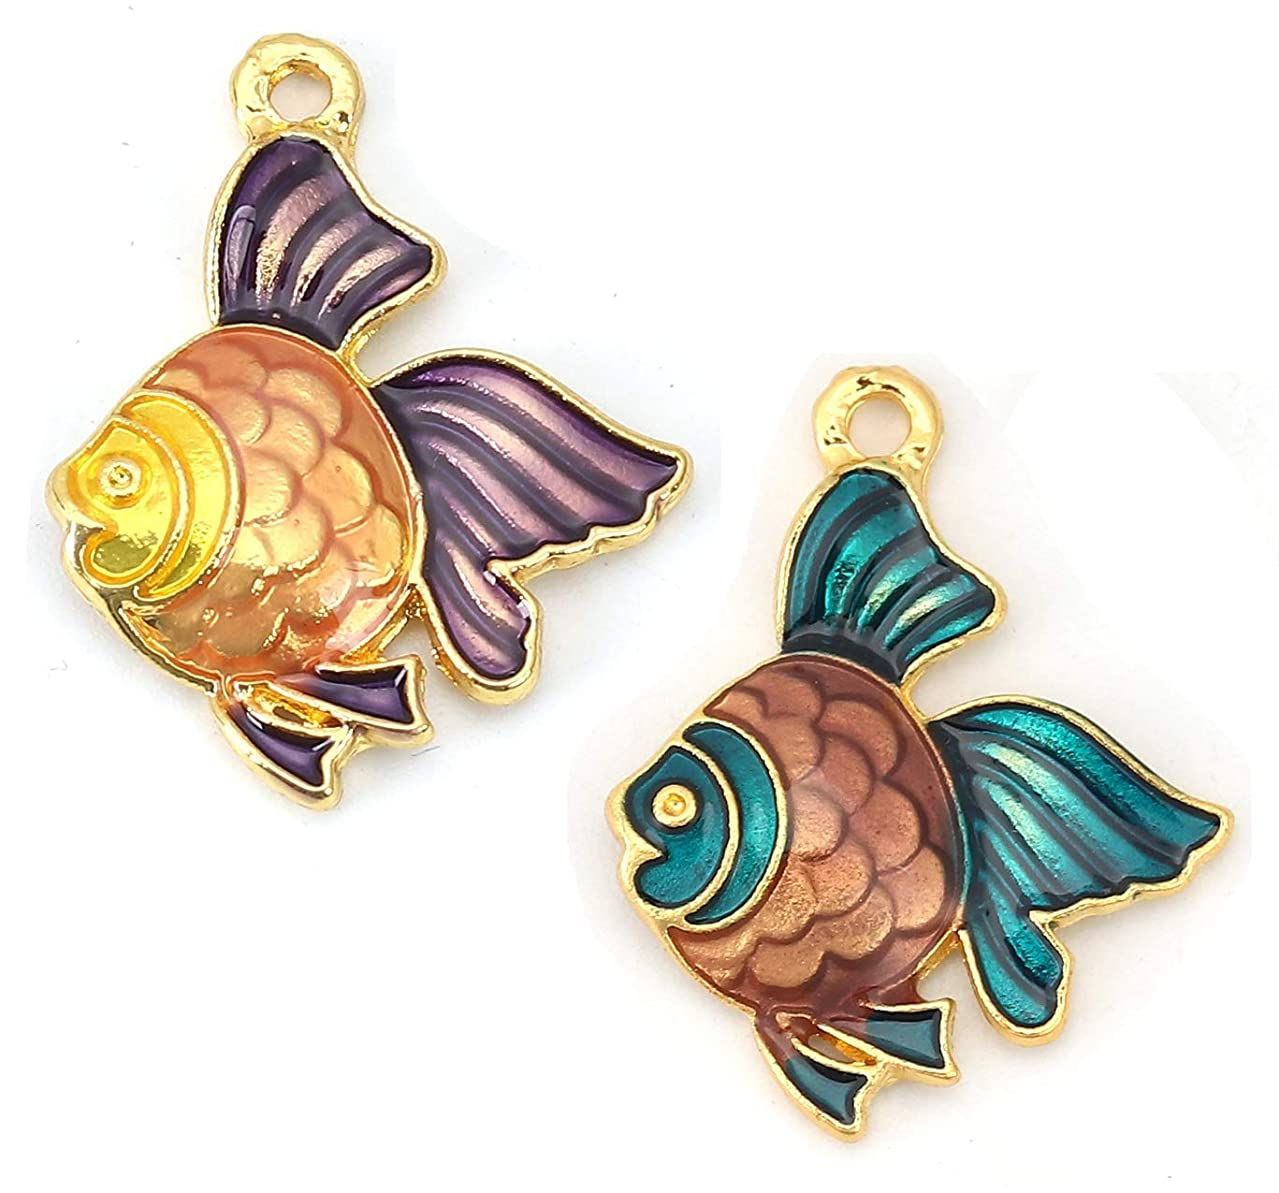 Ocean Fish or Goldfish Enamel Charms, 10 Pack, Gold Tone 3/4 Inch (Set A)